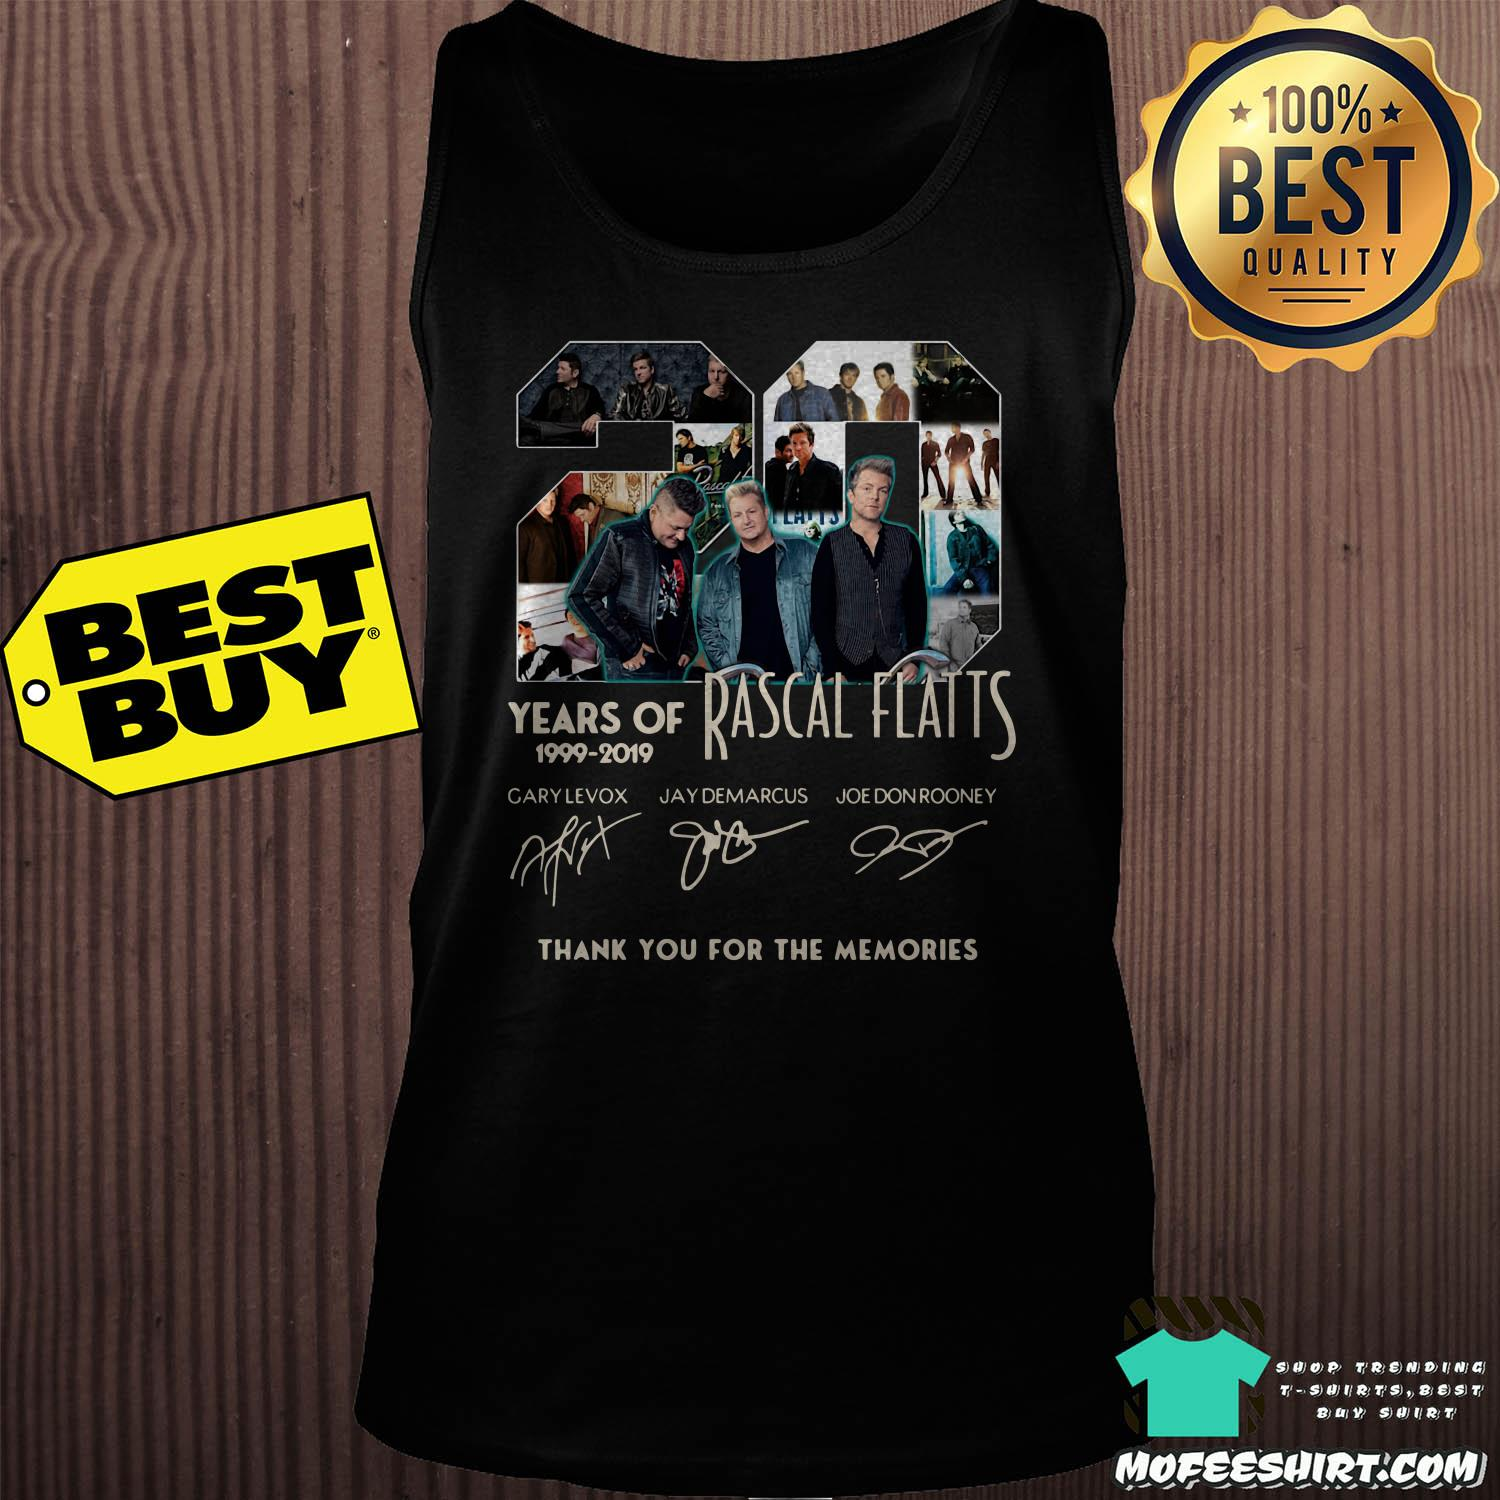 20 years of rascal flatts 1999 2019 thank you for the memories signature tank top - 20 Years of Rascal Flatts 1999-2019 thank you for the memories signature shirt